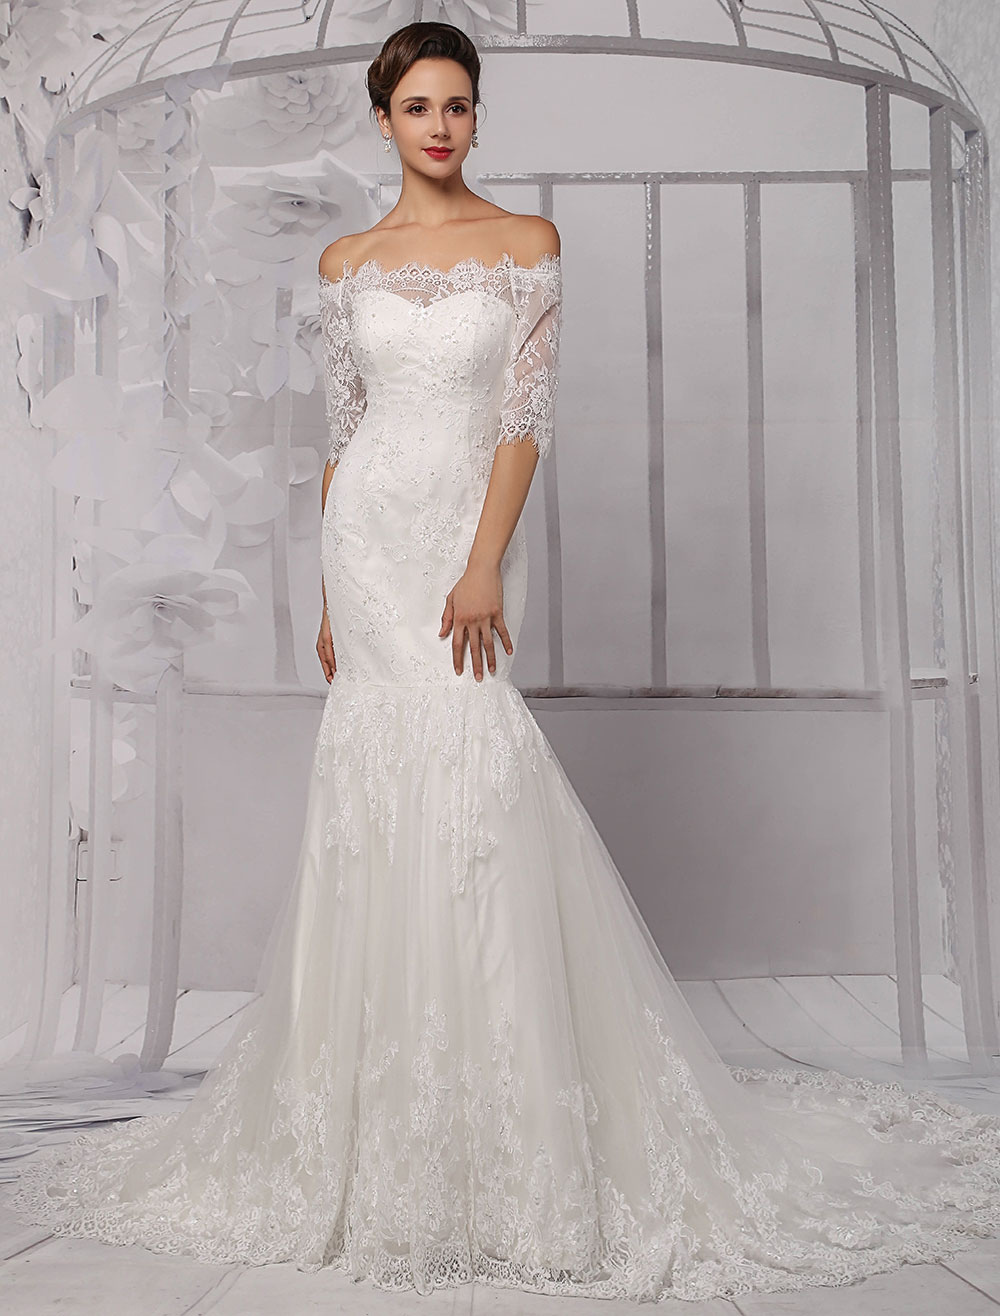 Trumpet Style Wedding Dresses Lace : Trumpet style wedding dress photo album watch out there s a clothes